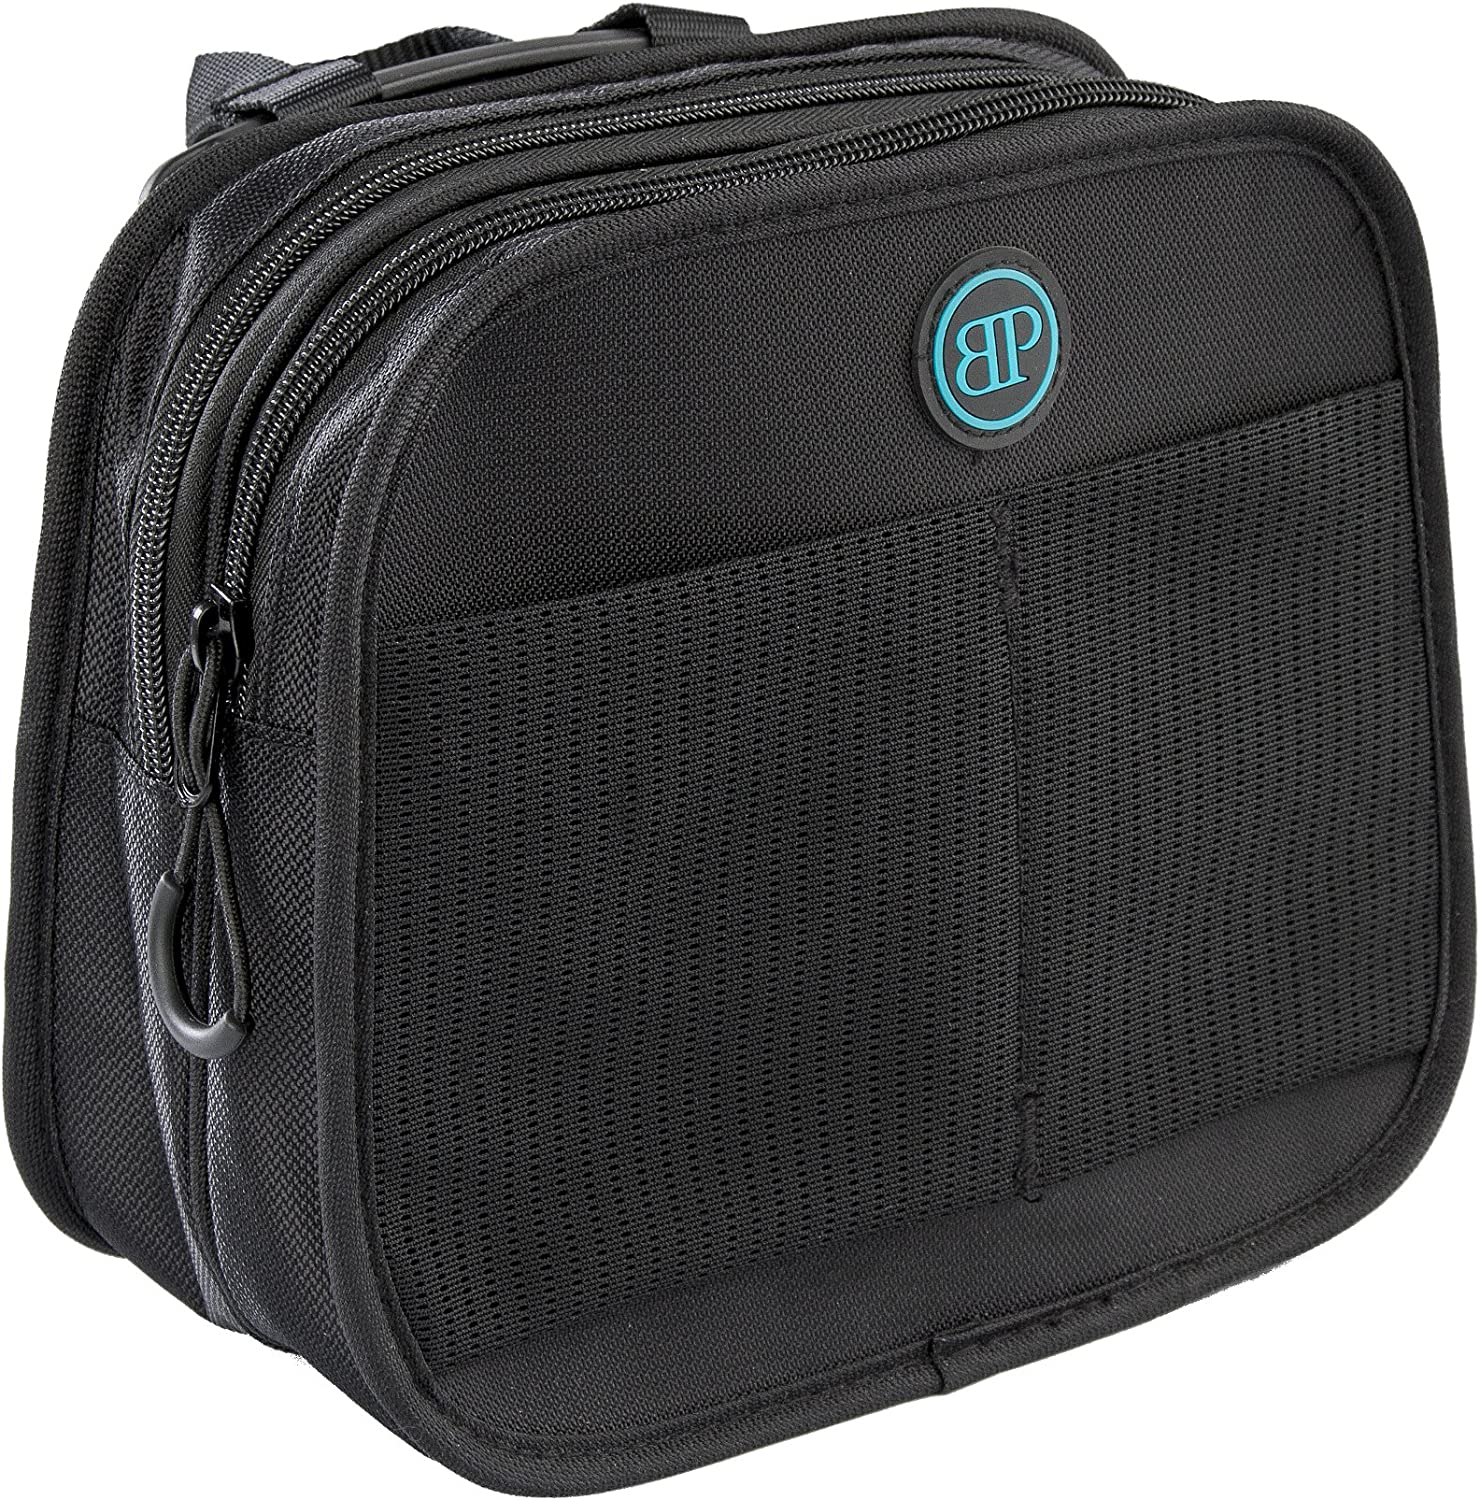 Bodypoint Wheelchair Mobility Bag, Black 61sT9kGXruL